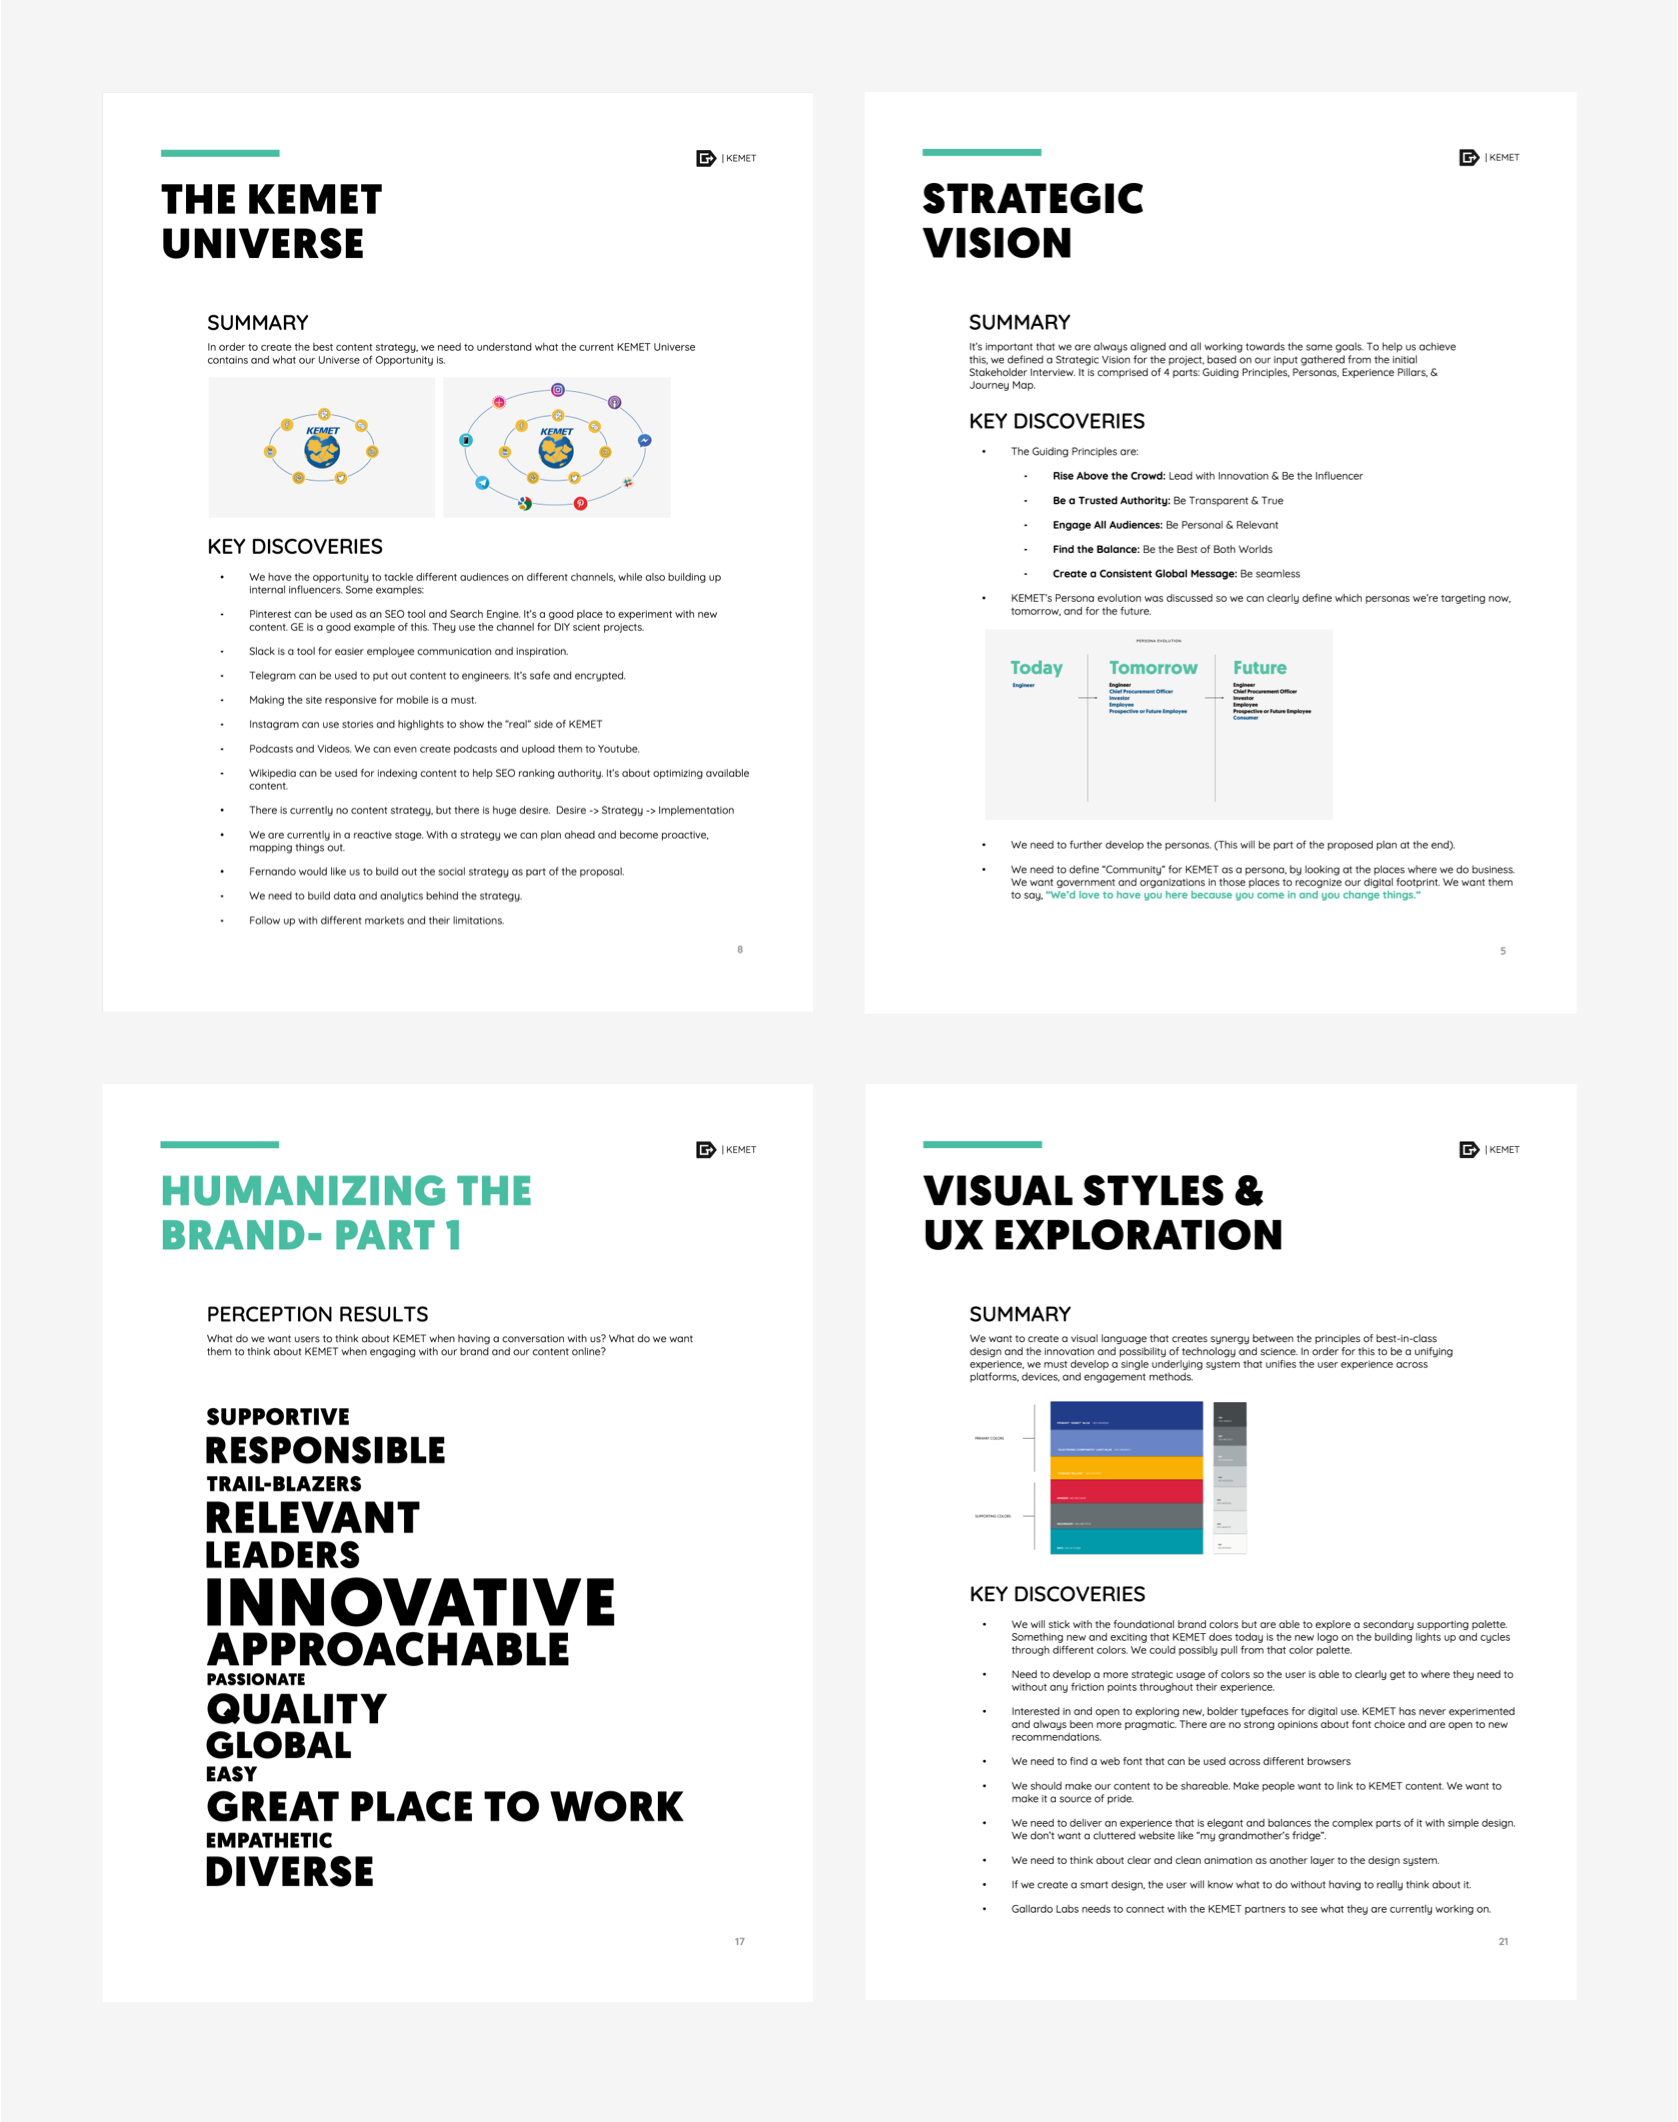 For pages of the final workshop report delivery. These describe the KEMET universe, strategic vision, humanizing the brand, and visual styles and UX exploration.